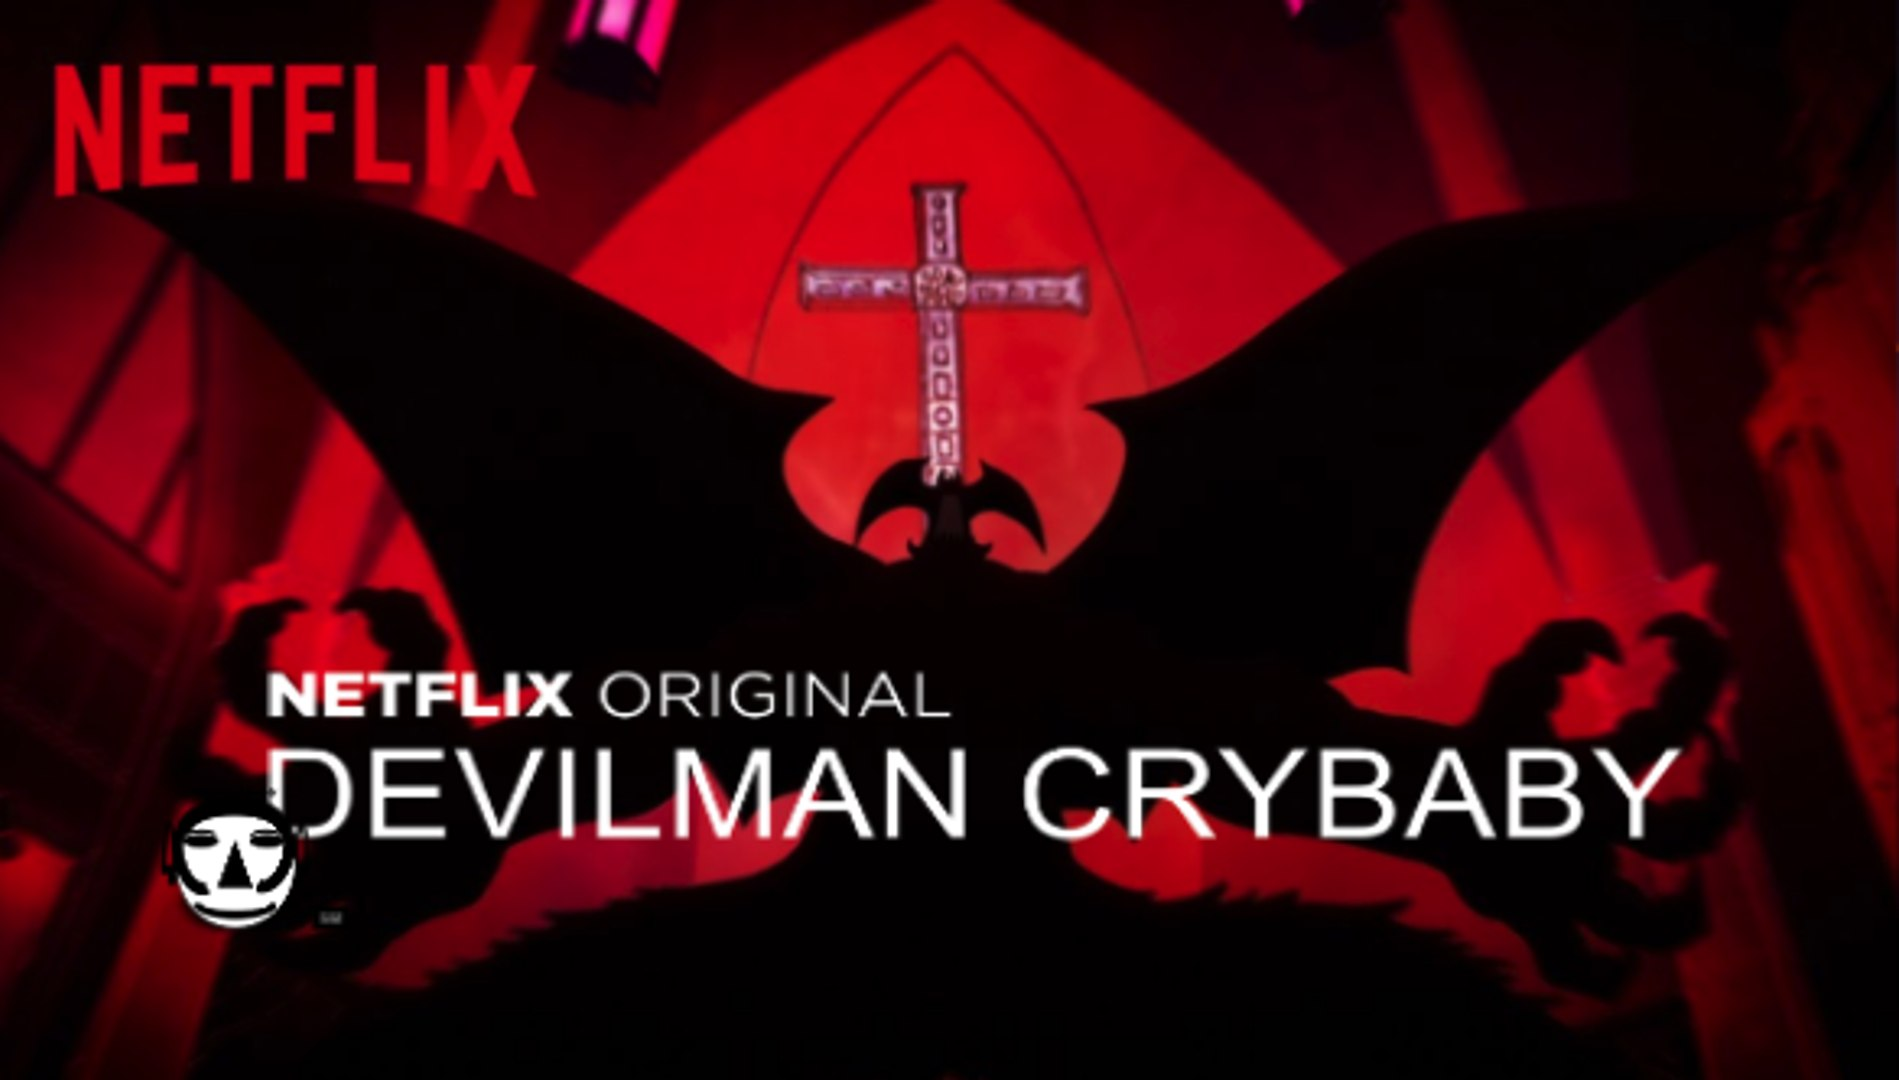 DEVILMAN: Cry Baby I TV Series Trailer I ANIME Series I NETFLIX ORIGINALS I 2018 NETFLIX